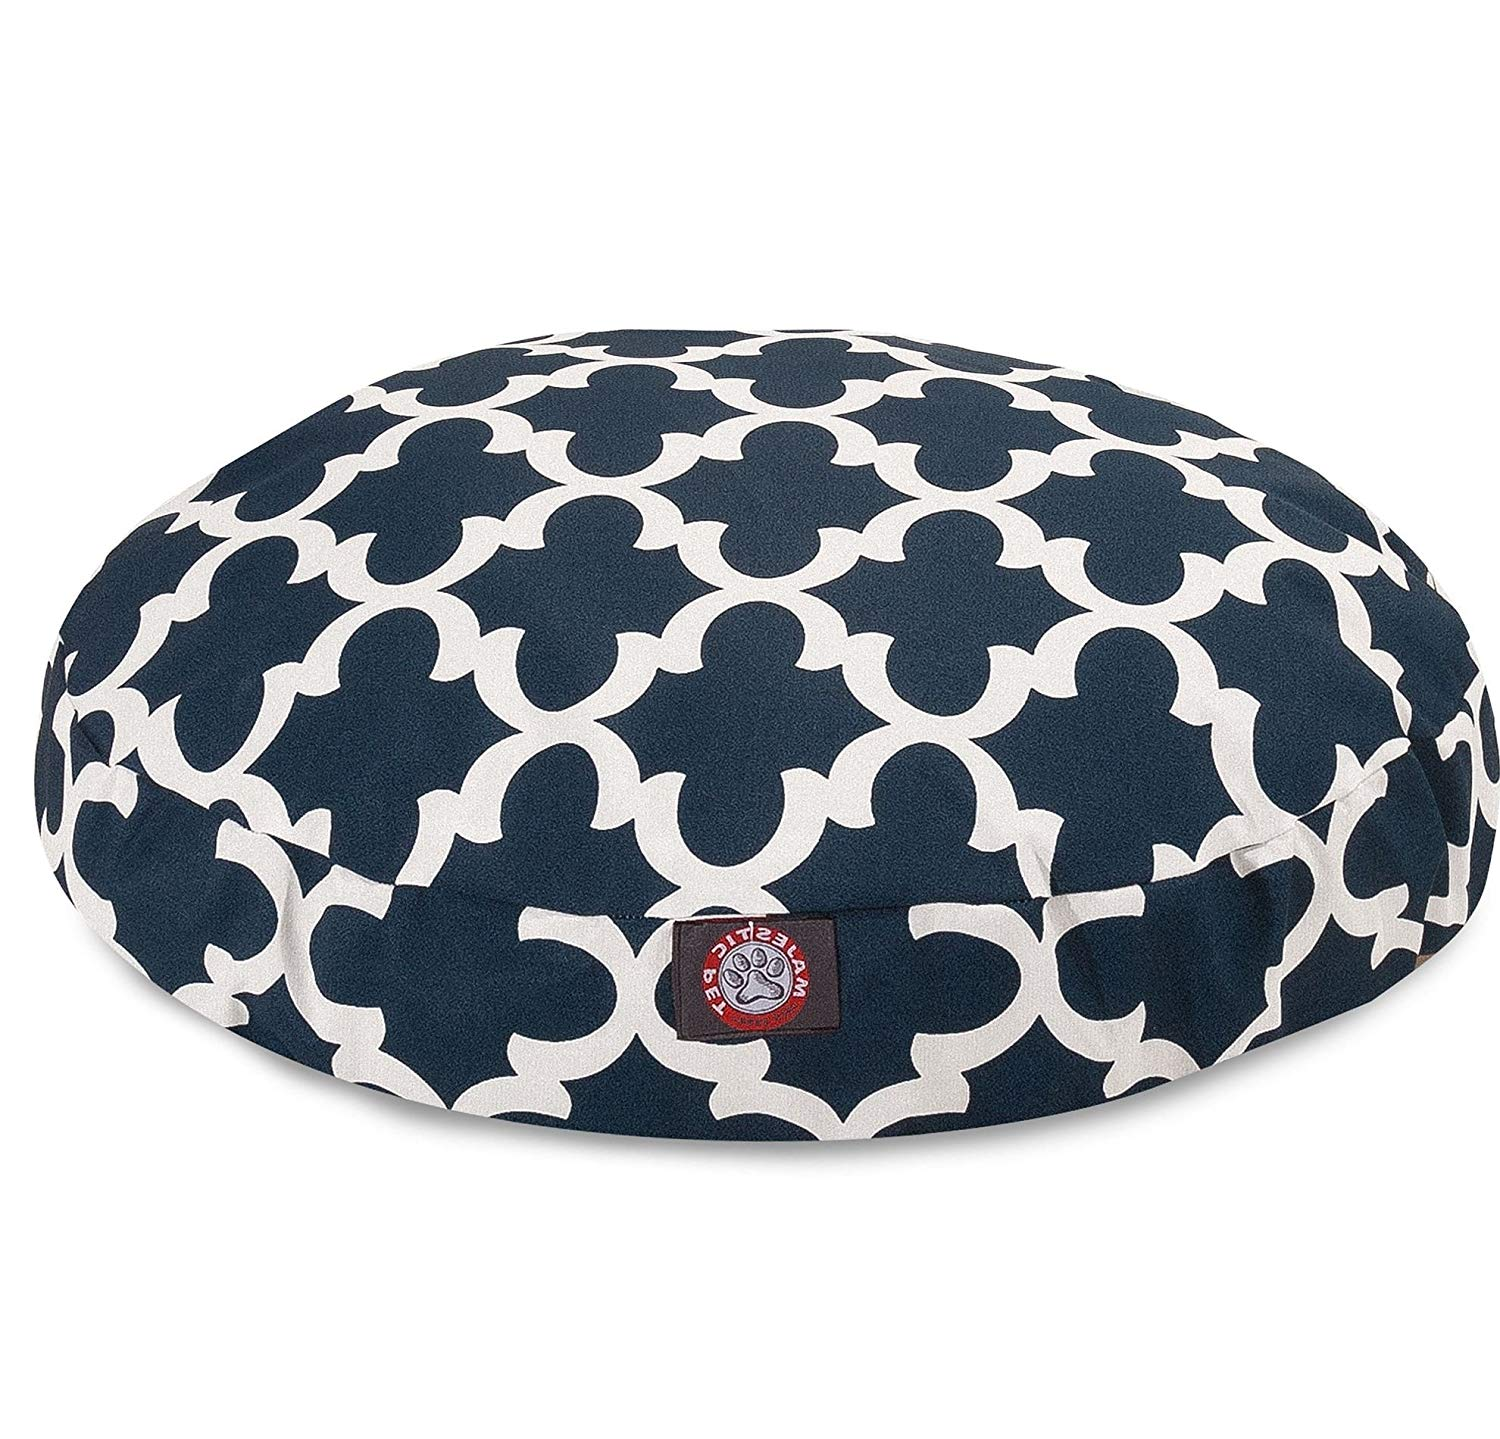 1 Piece Navy Blue Trellis Pattern Dog Bed (Small), Elegant Geometric Print Pet Bedding for Puppies, Features Removable Cover, Water & Stain Resistant, Round Shape, Polyester